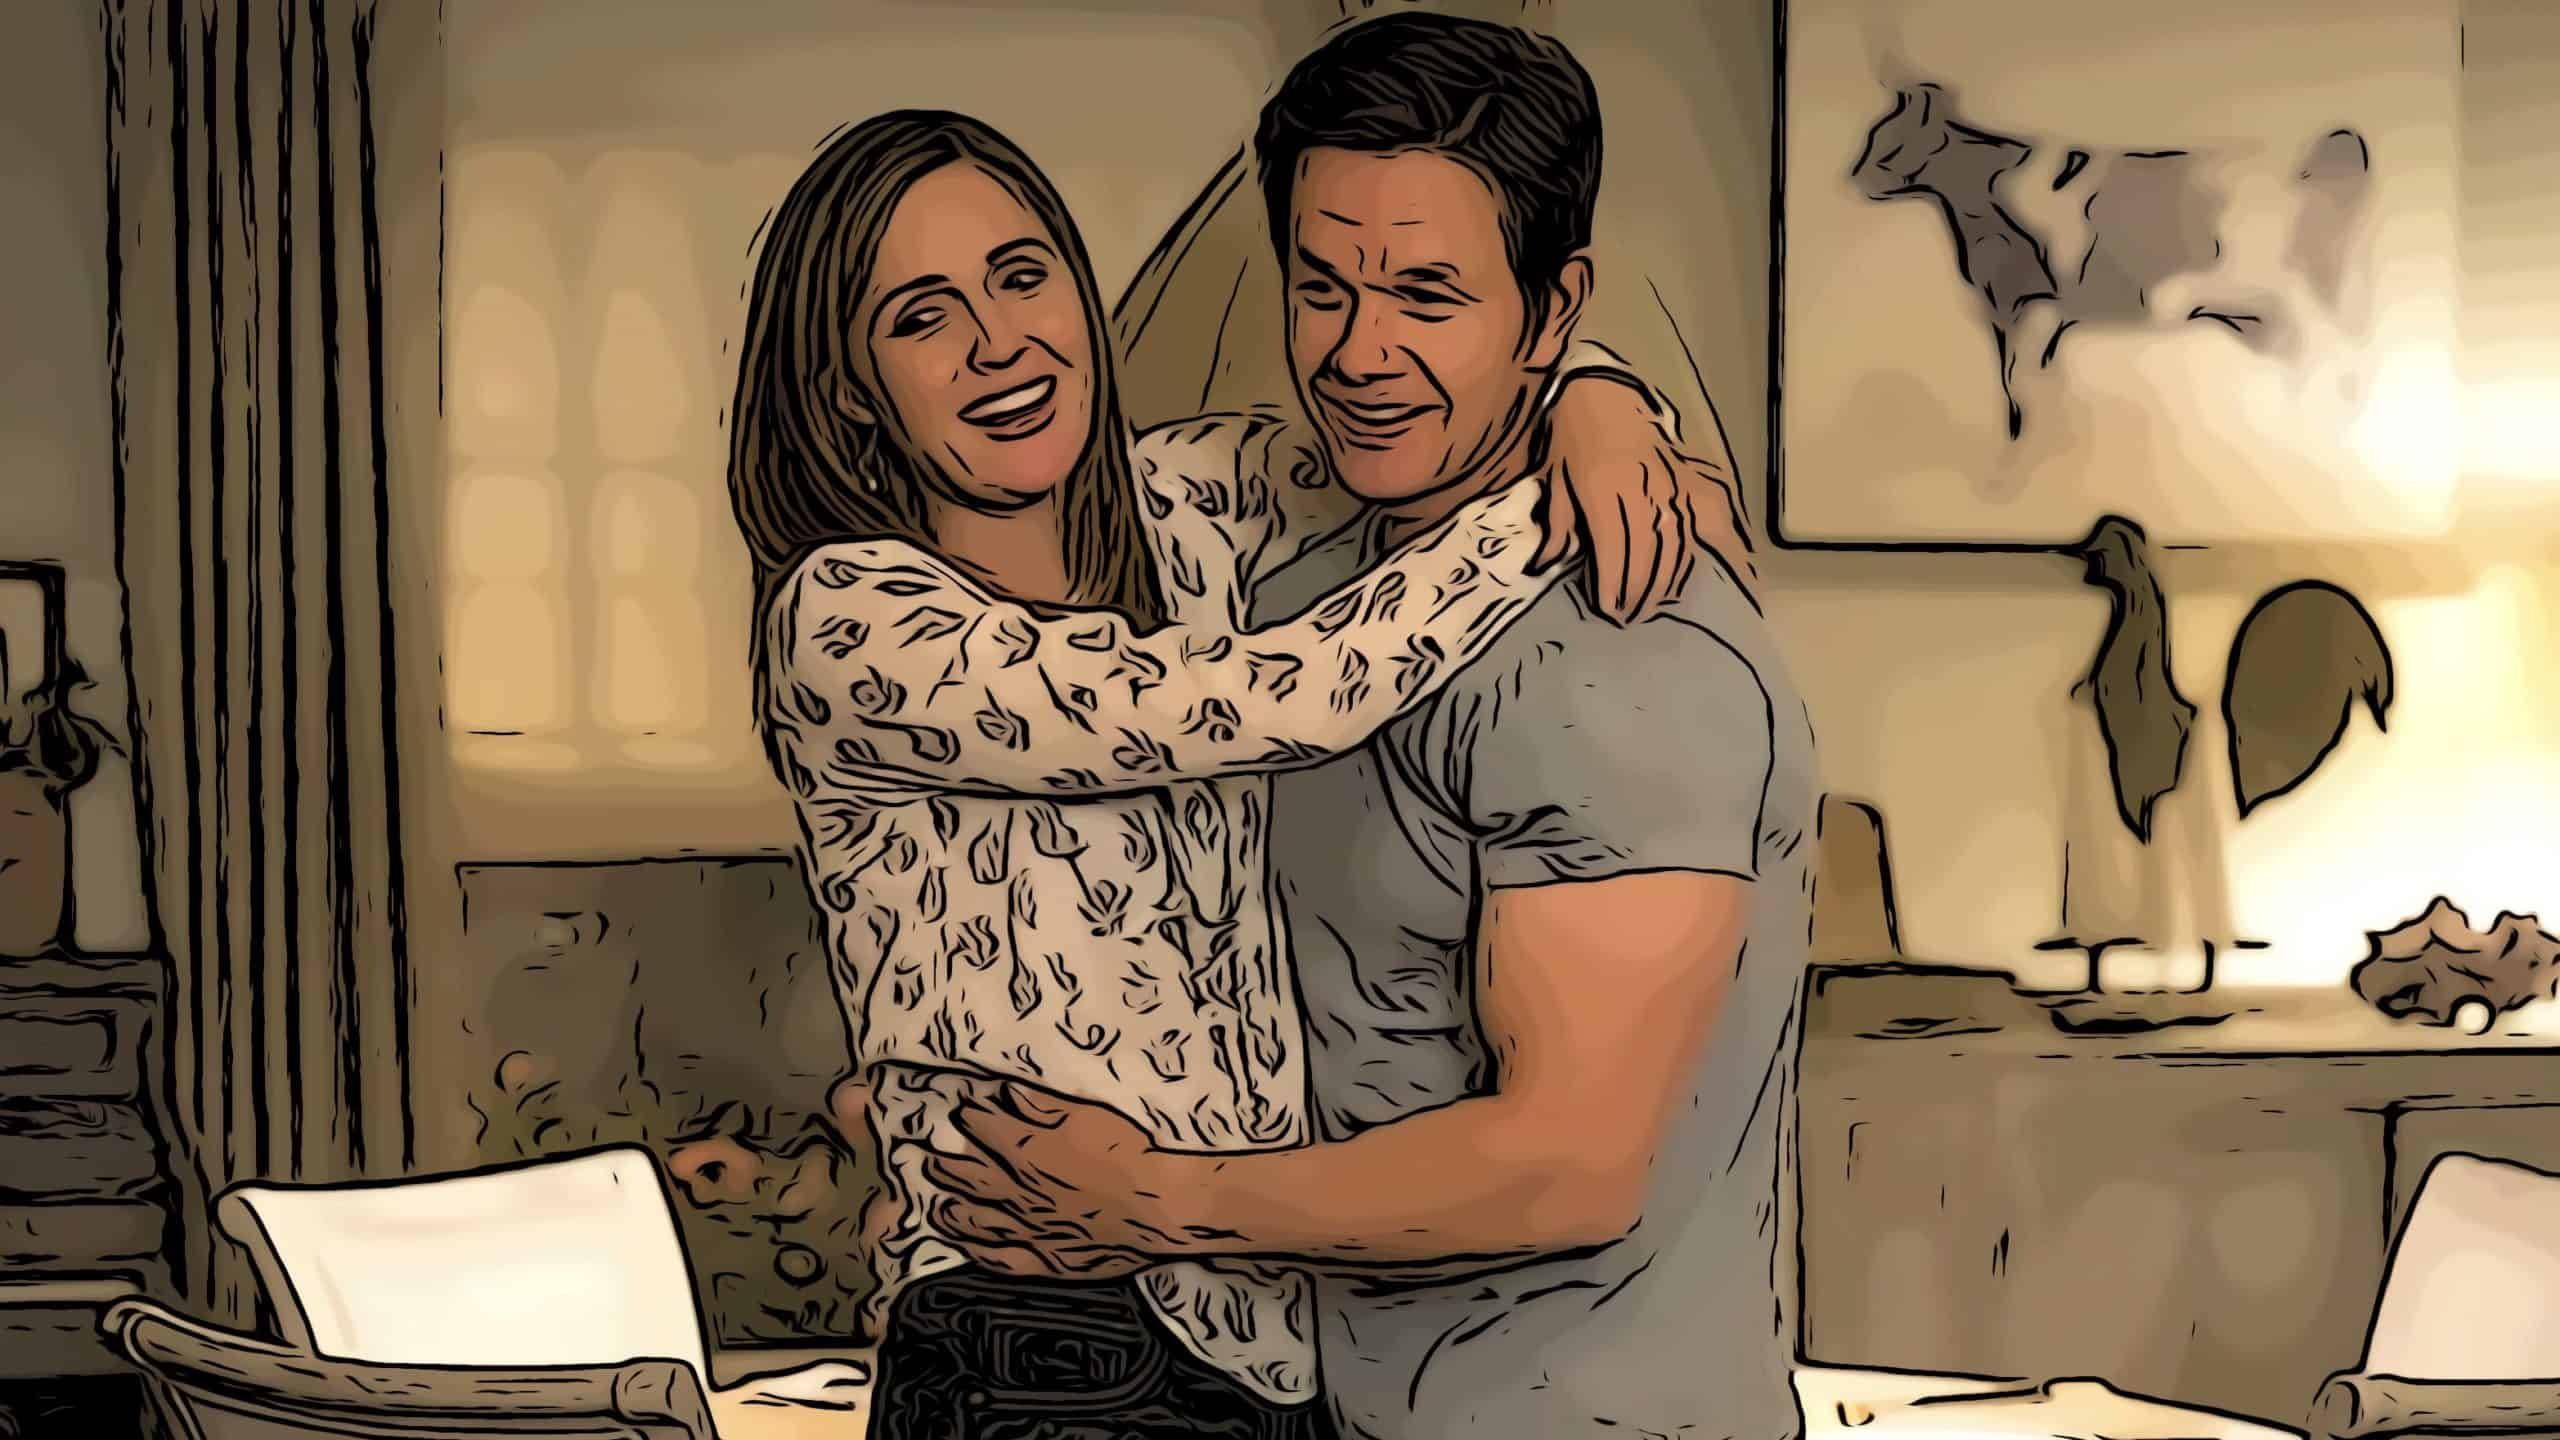 Scene from Instant Family for best movies about adoption post.